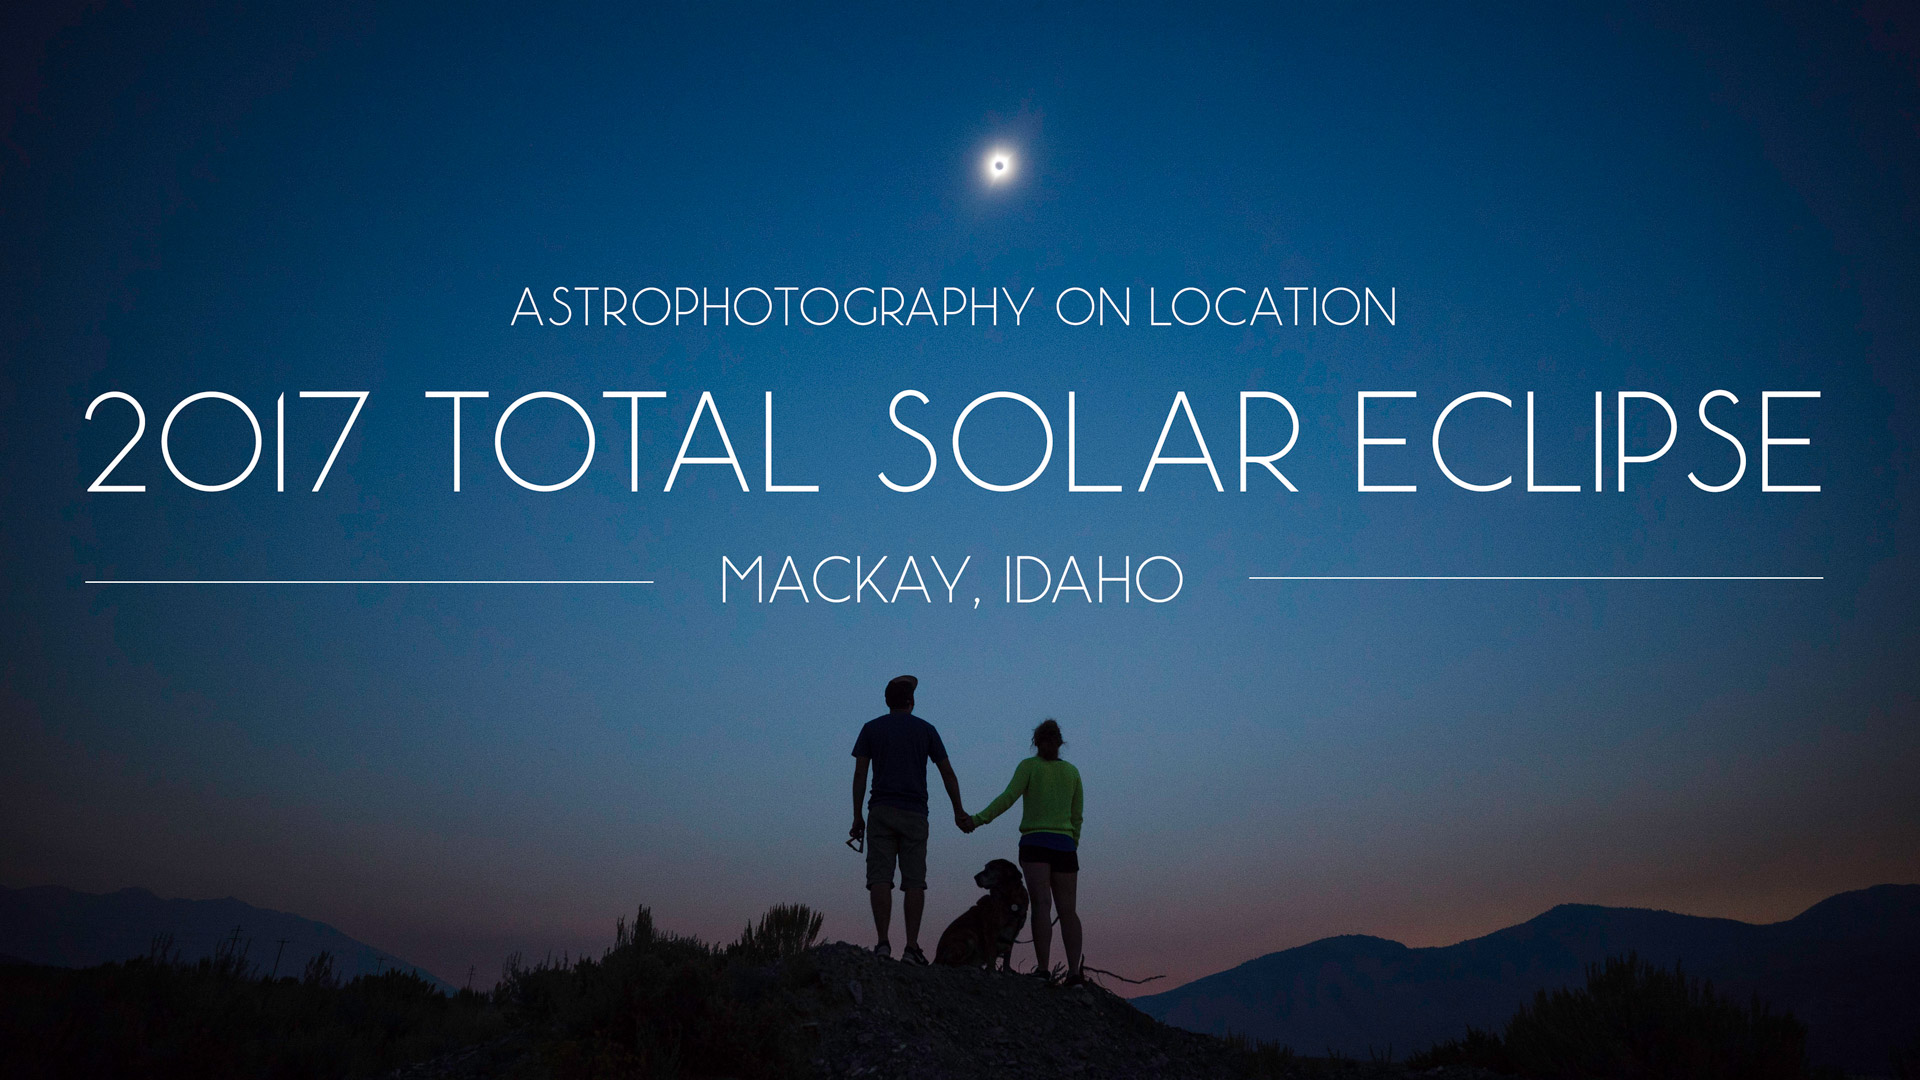 Astrophotography On Location: 2017 Total Solar Eclipse - Mackay, Idaho